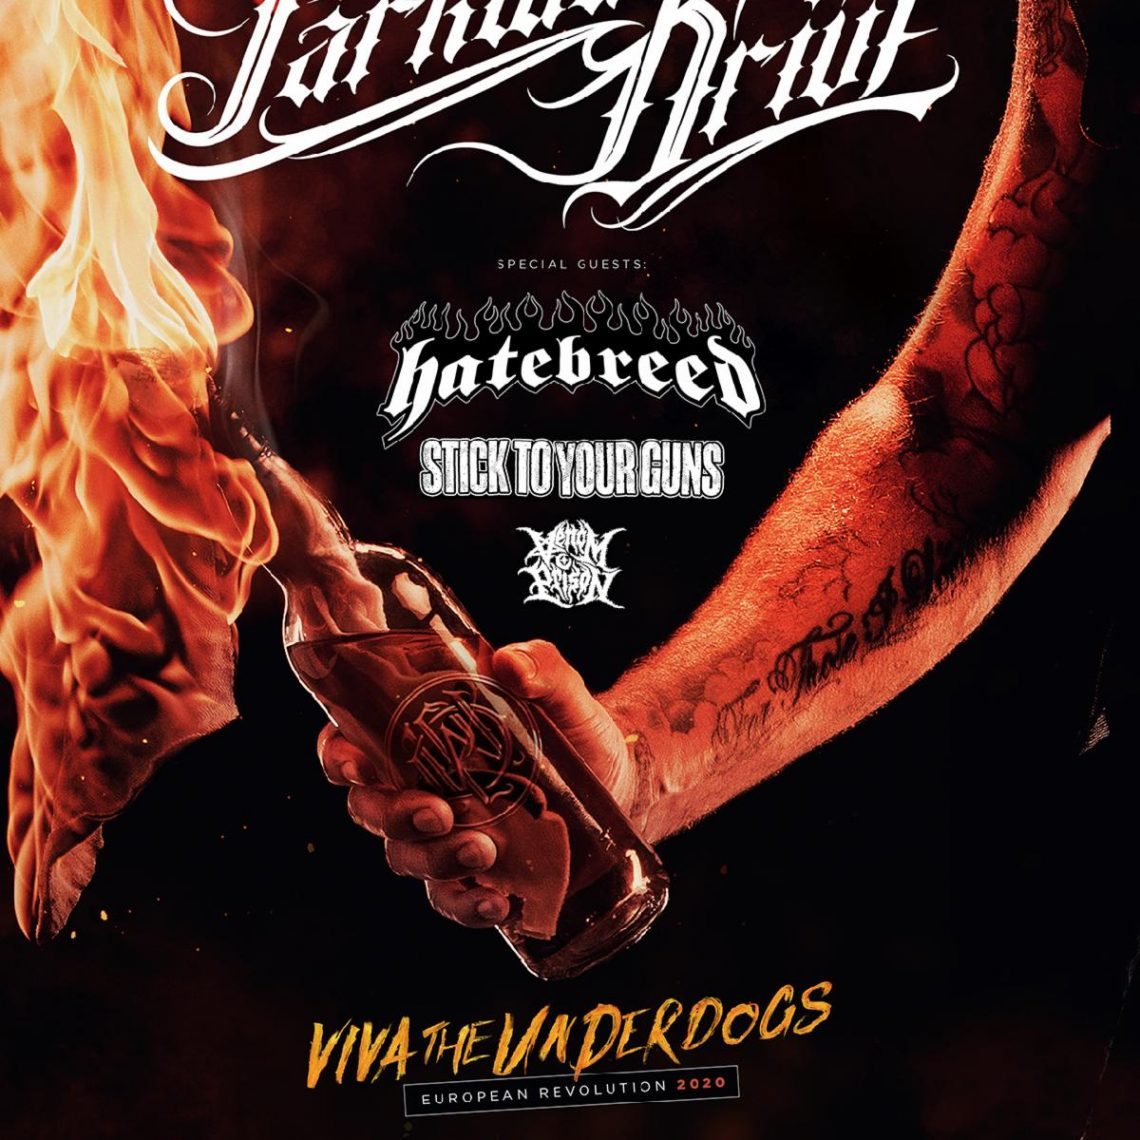 HATEBREED & VENOM PRISON join Parkway Drive in April 2020